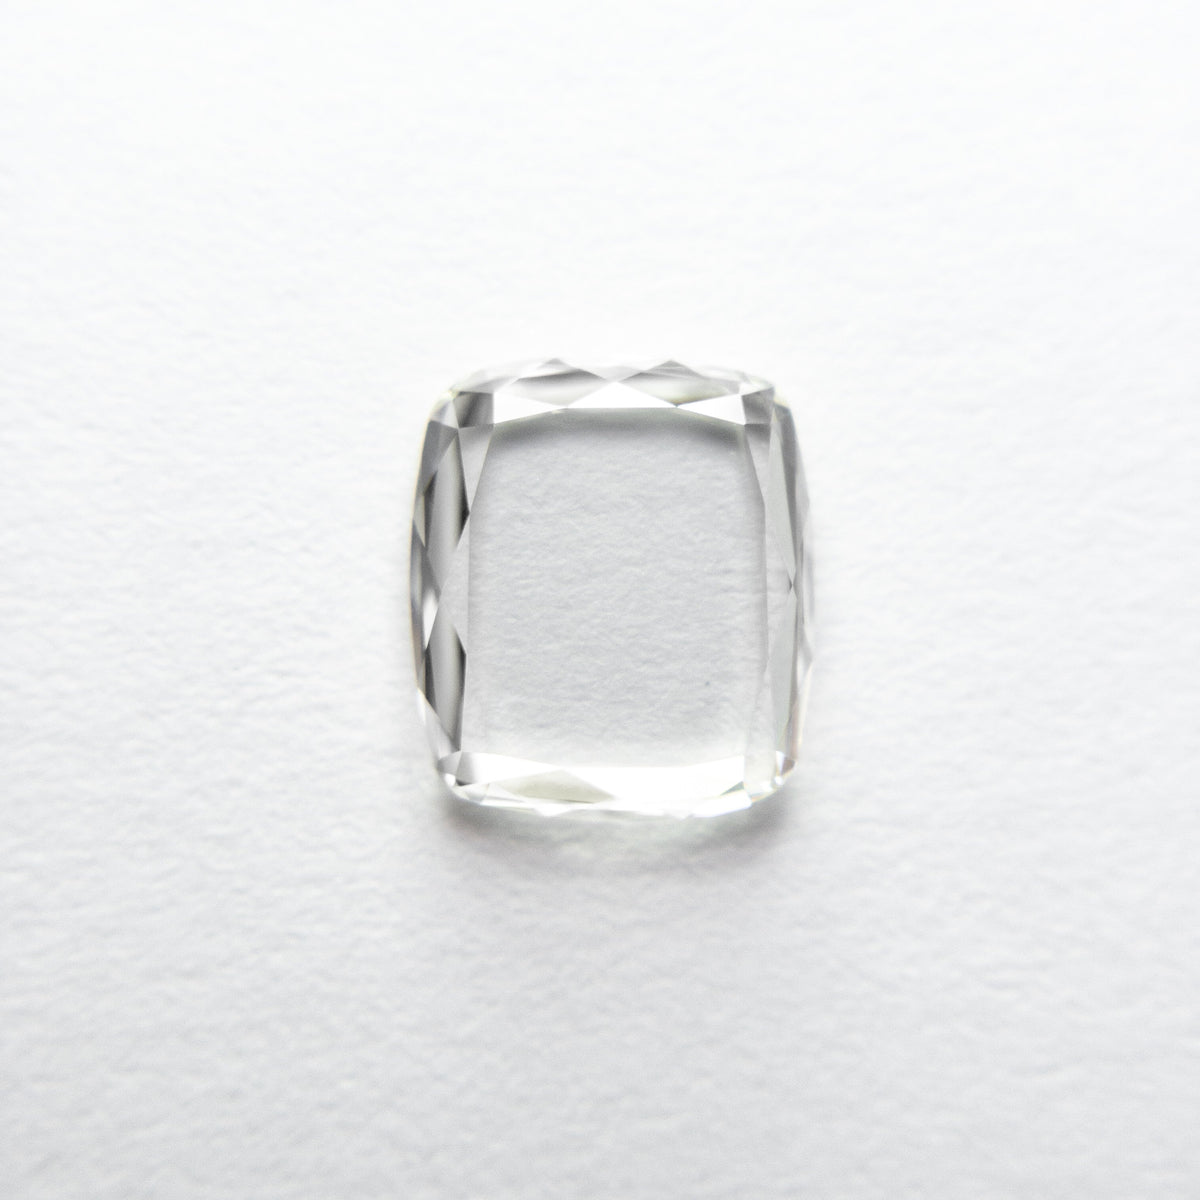 0.90ct 7.25x6.31x1.49mm VS J-K Cushion Portrait Cut 18609-02